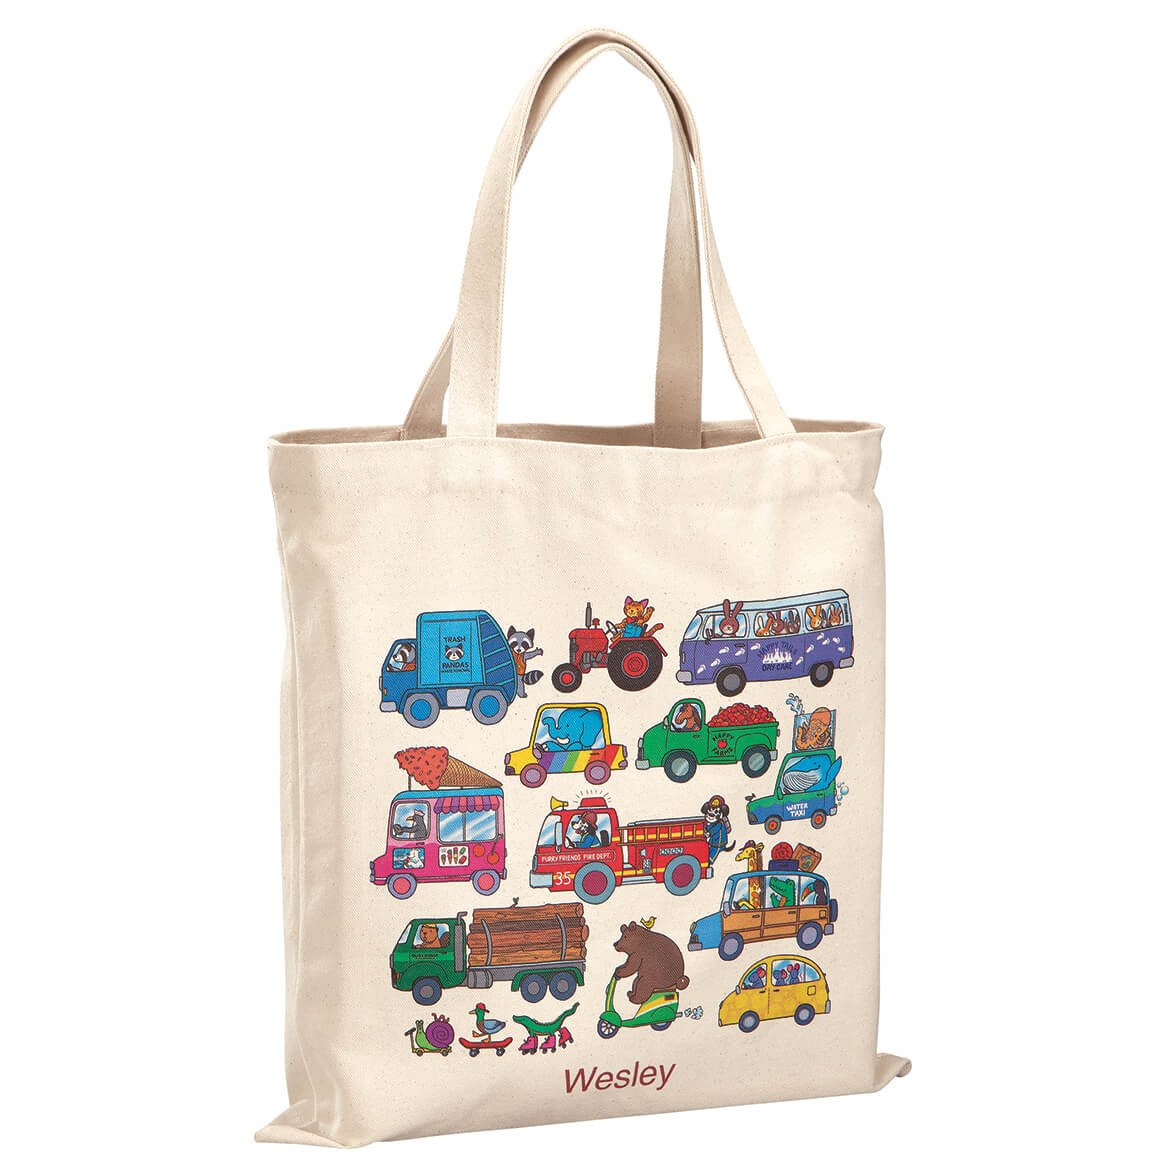 Personalized Animals and Automobiles Children's Tote-369270